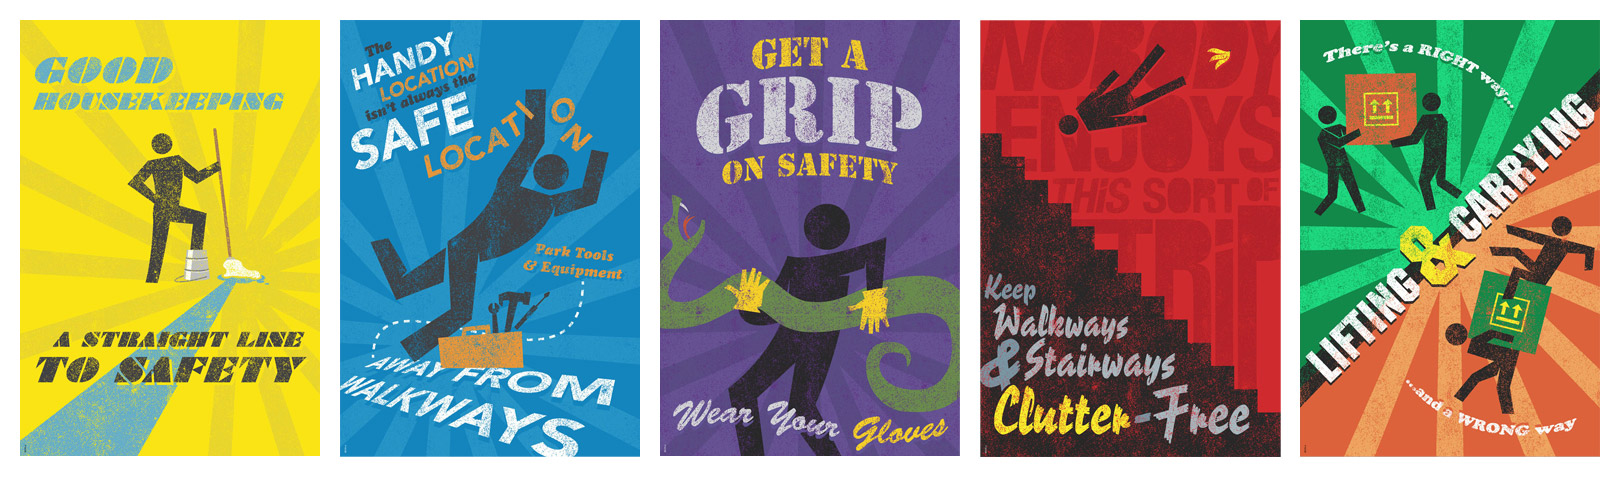 Workplace Safety Posters Brian Goff Design